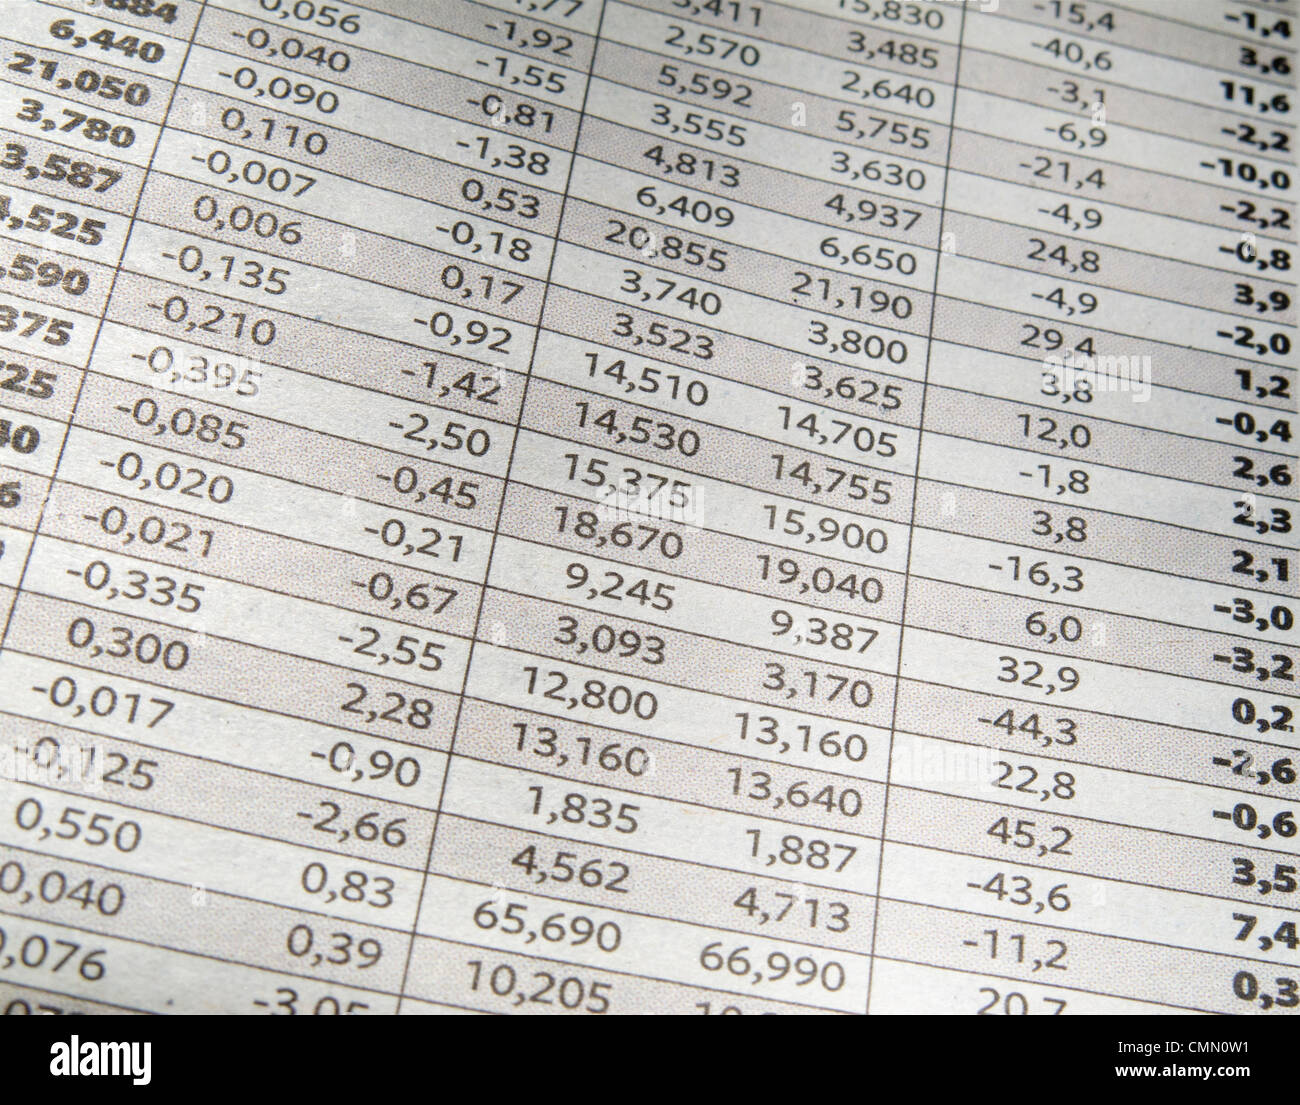 Newspaper list showing daily movement of stock market shares. - Stock Image